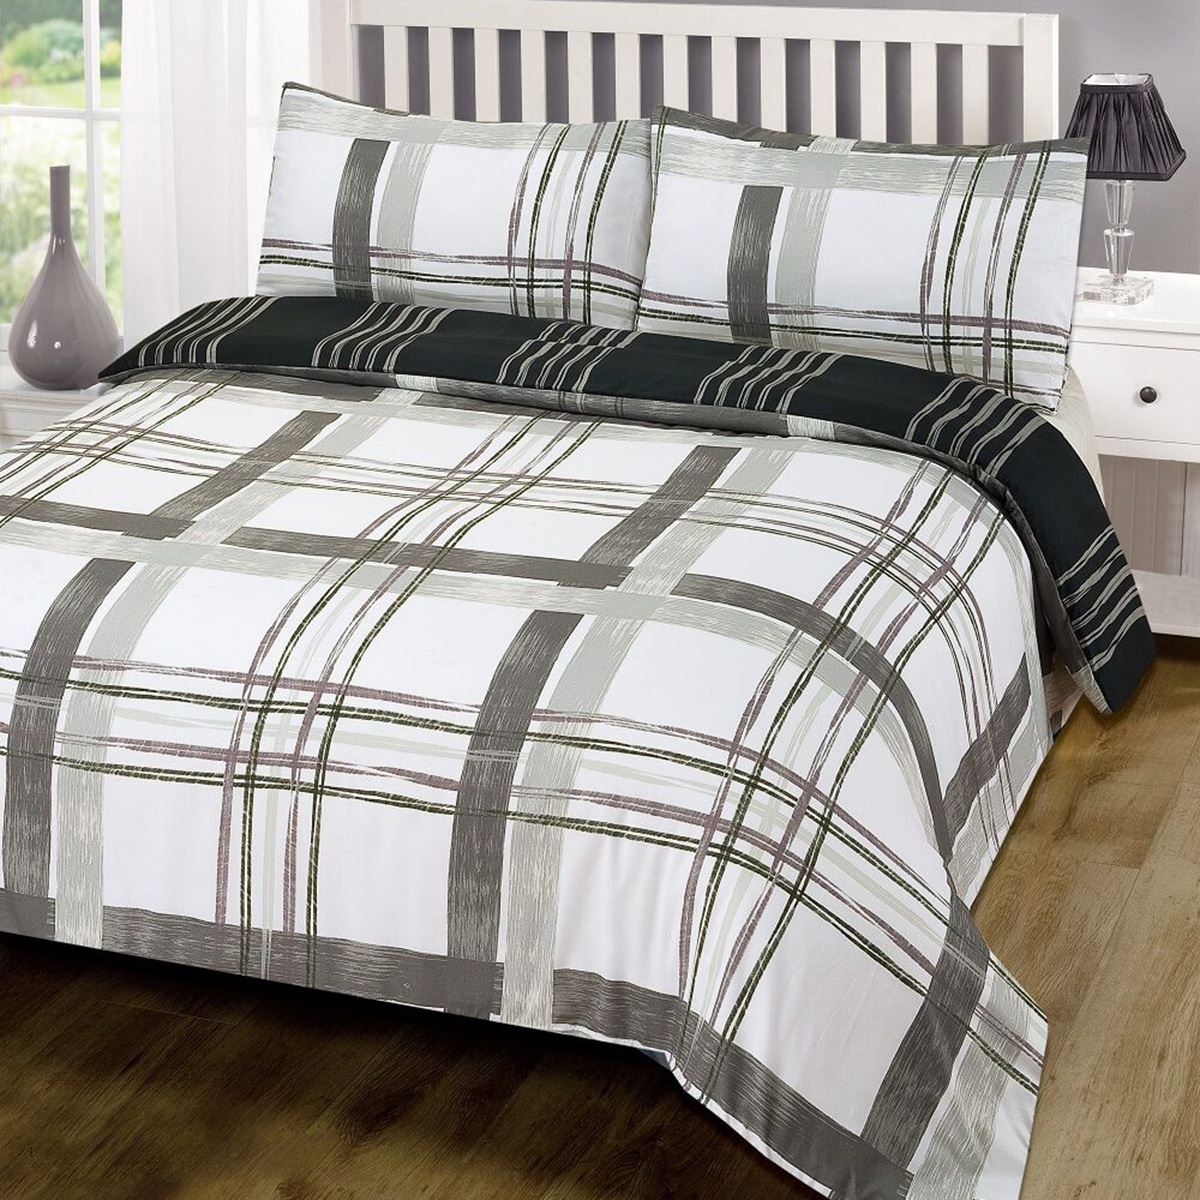 Black White And Grey Duvet Covers Poole Grey Check Double Duvet Cover Set Reversible Bedding